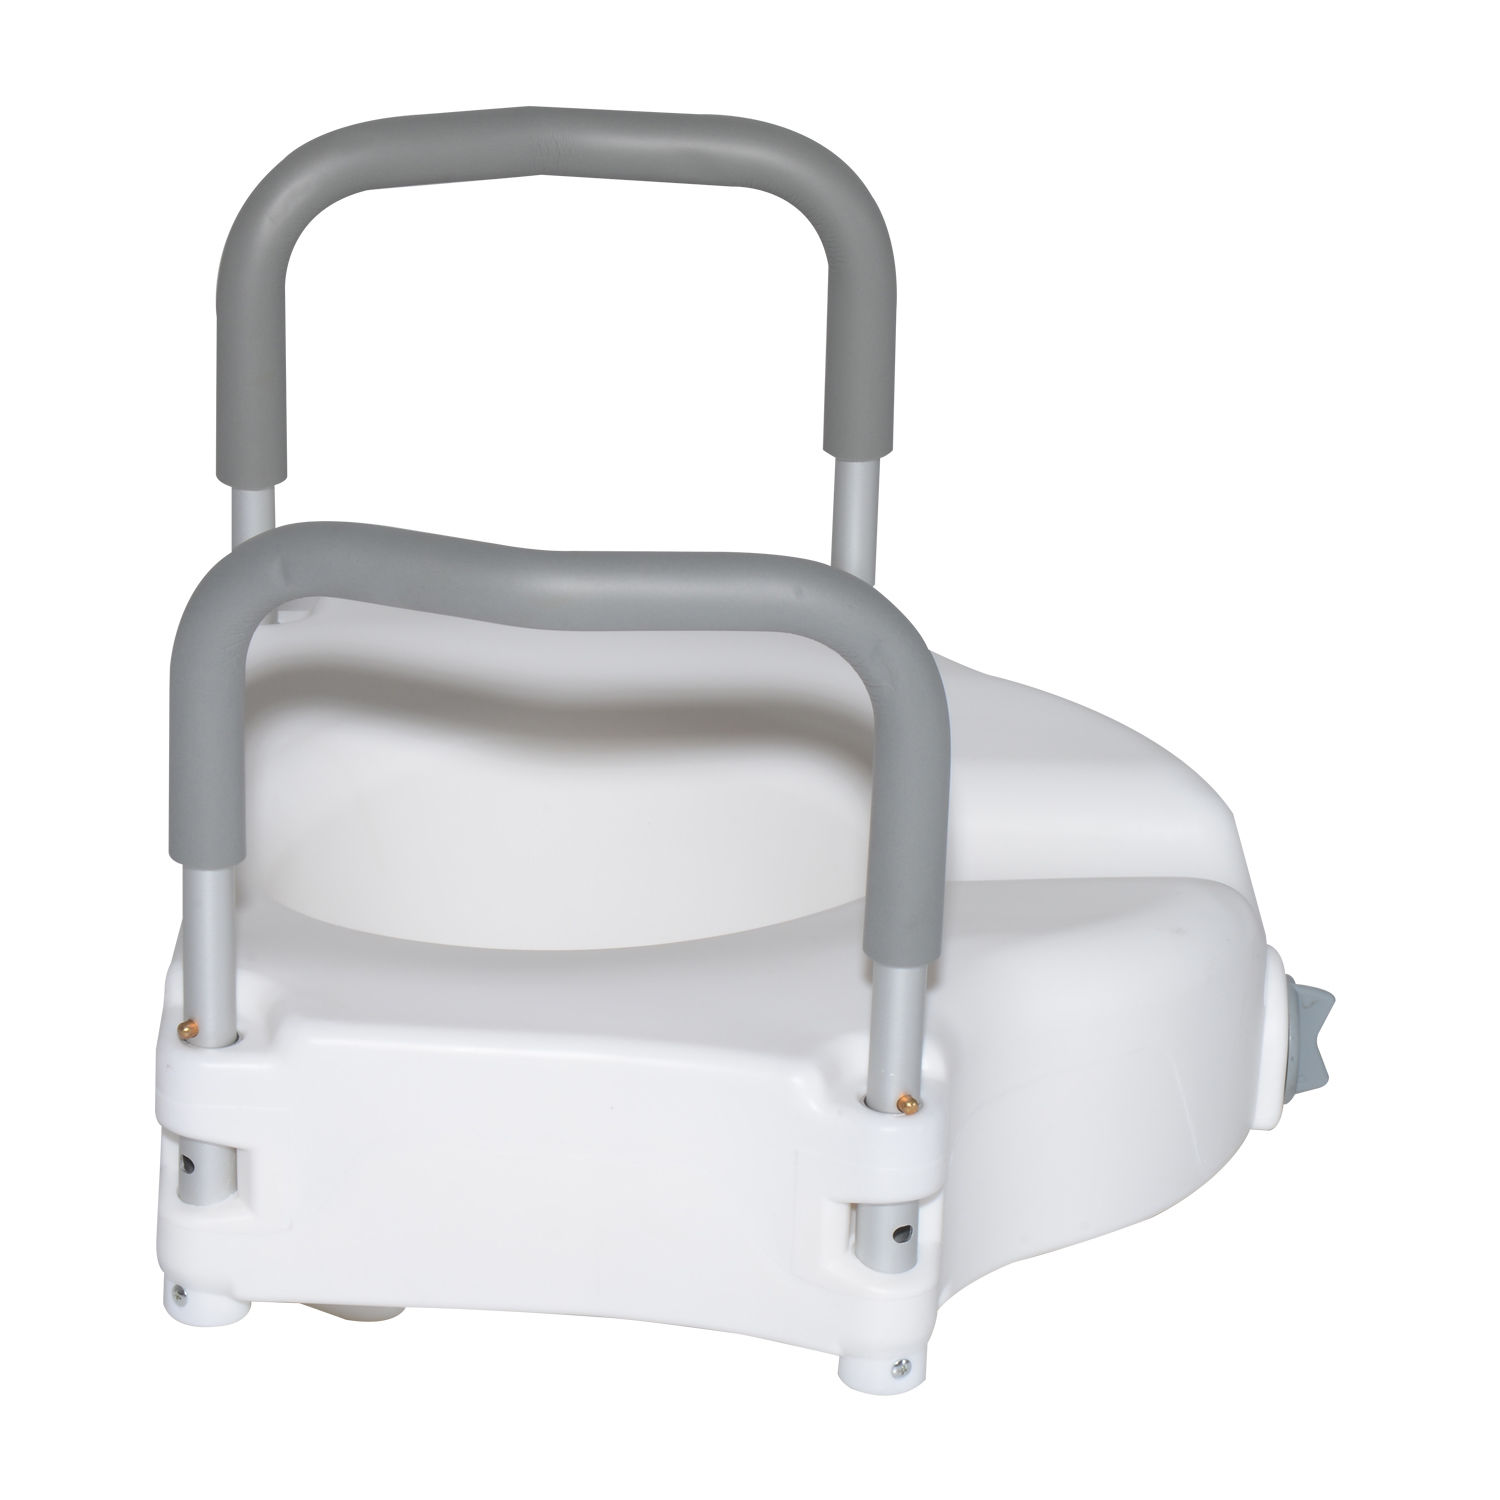 Raised Elevated Toilet Disability Aid Seat Padded Arms